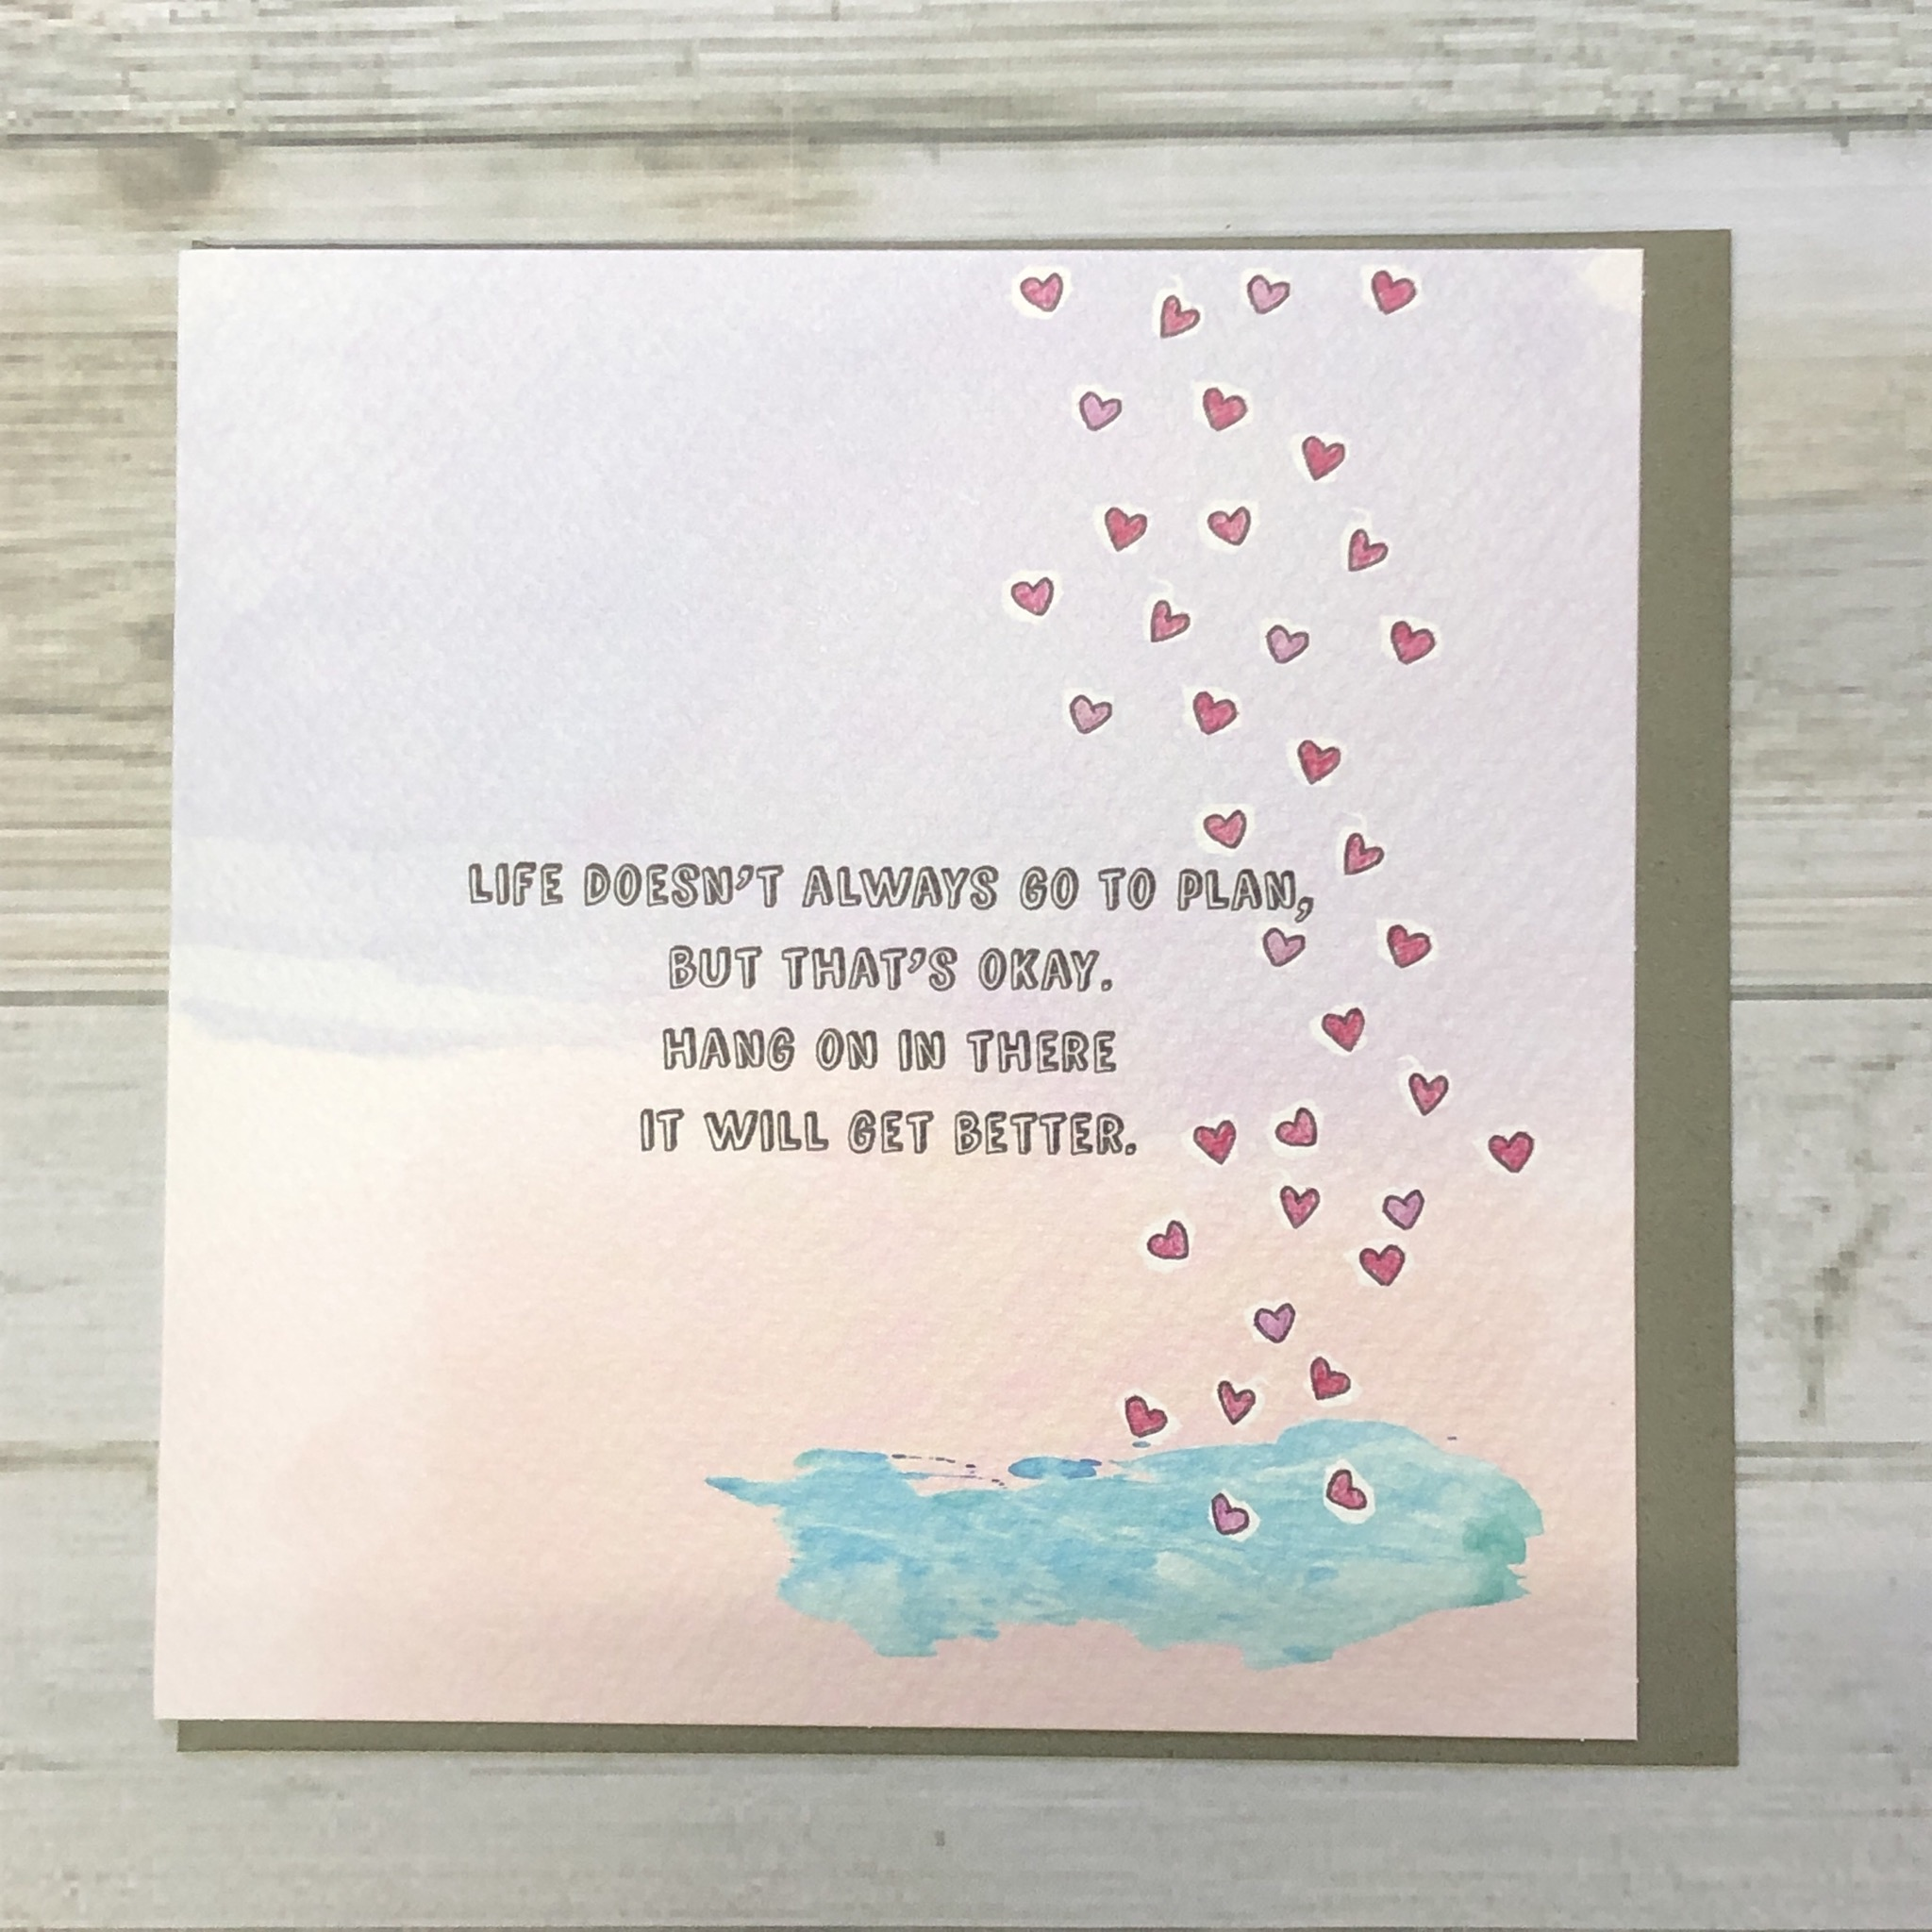 Positive vibes greeting cards. Life doesn't always go to plan, but that's okay. Hang on in there it will get better.